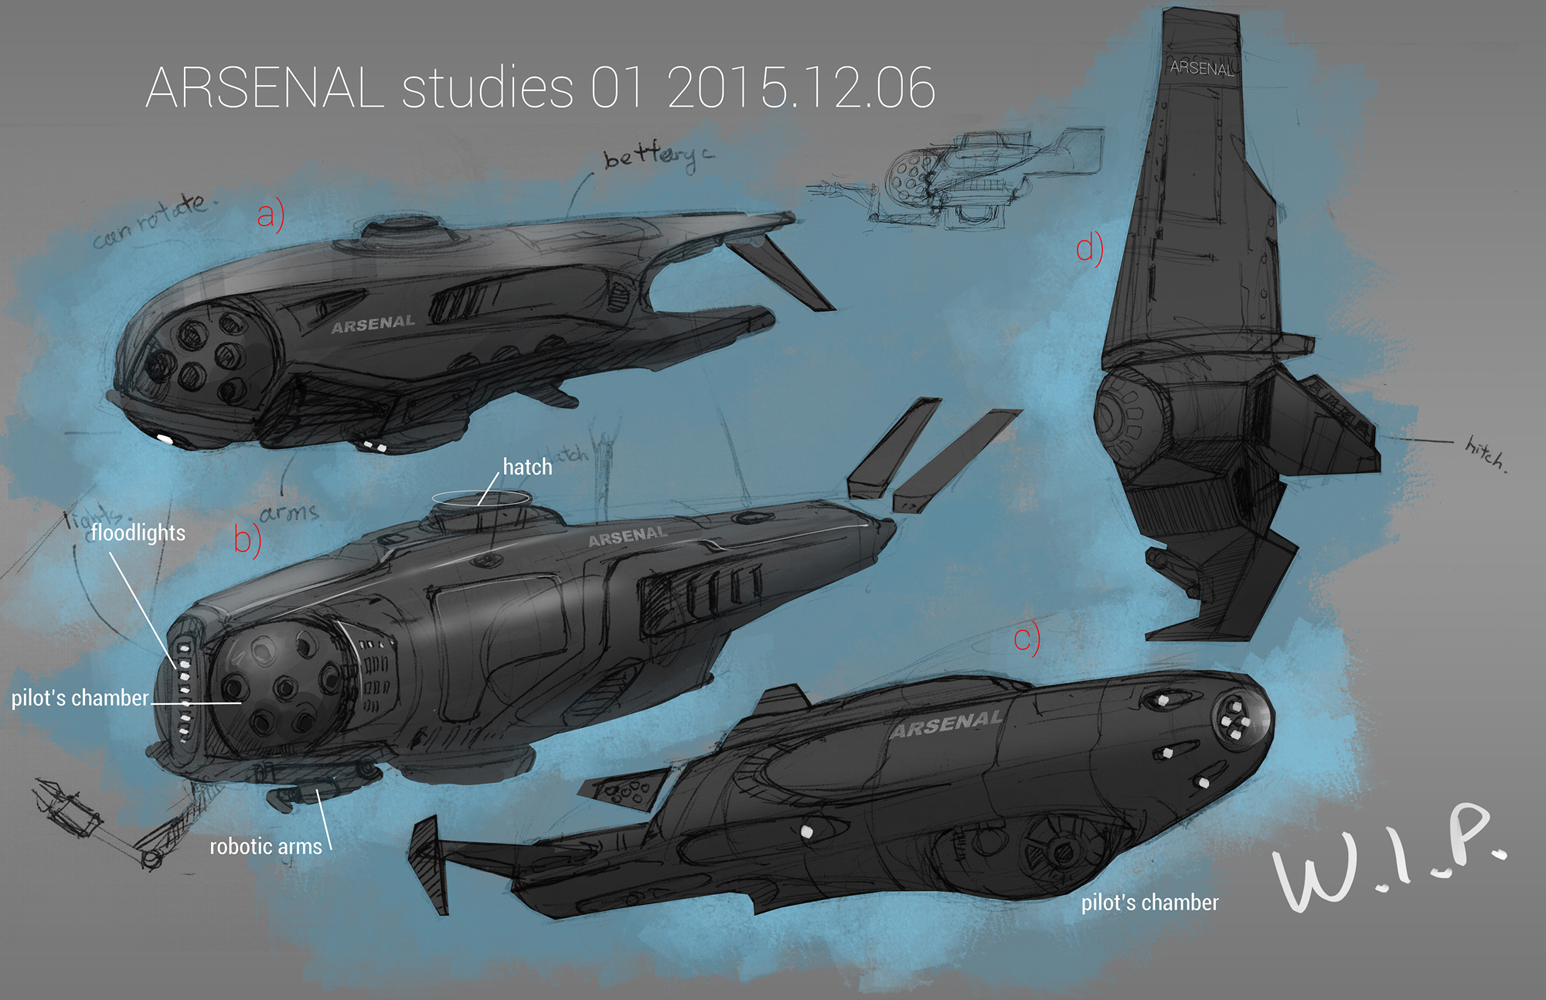 05_ARSENAL_preliminary_sketches01.jpg